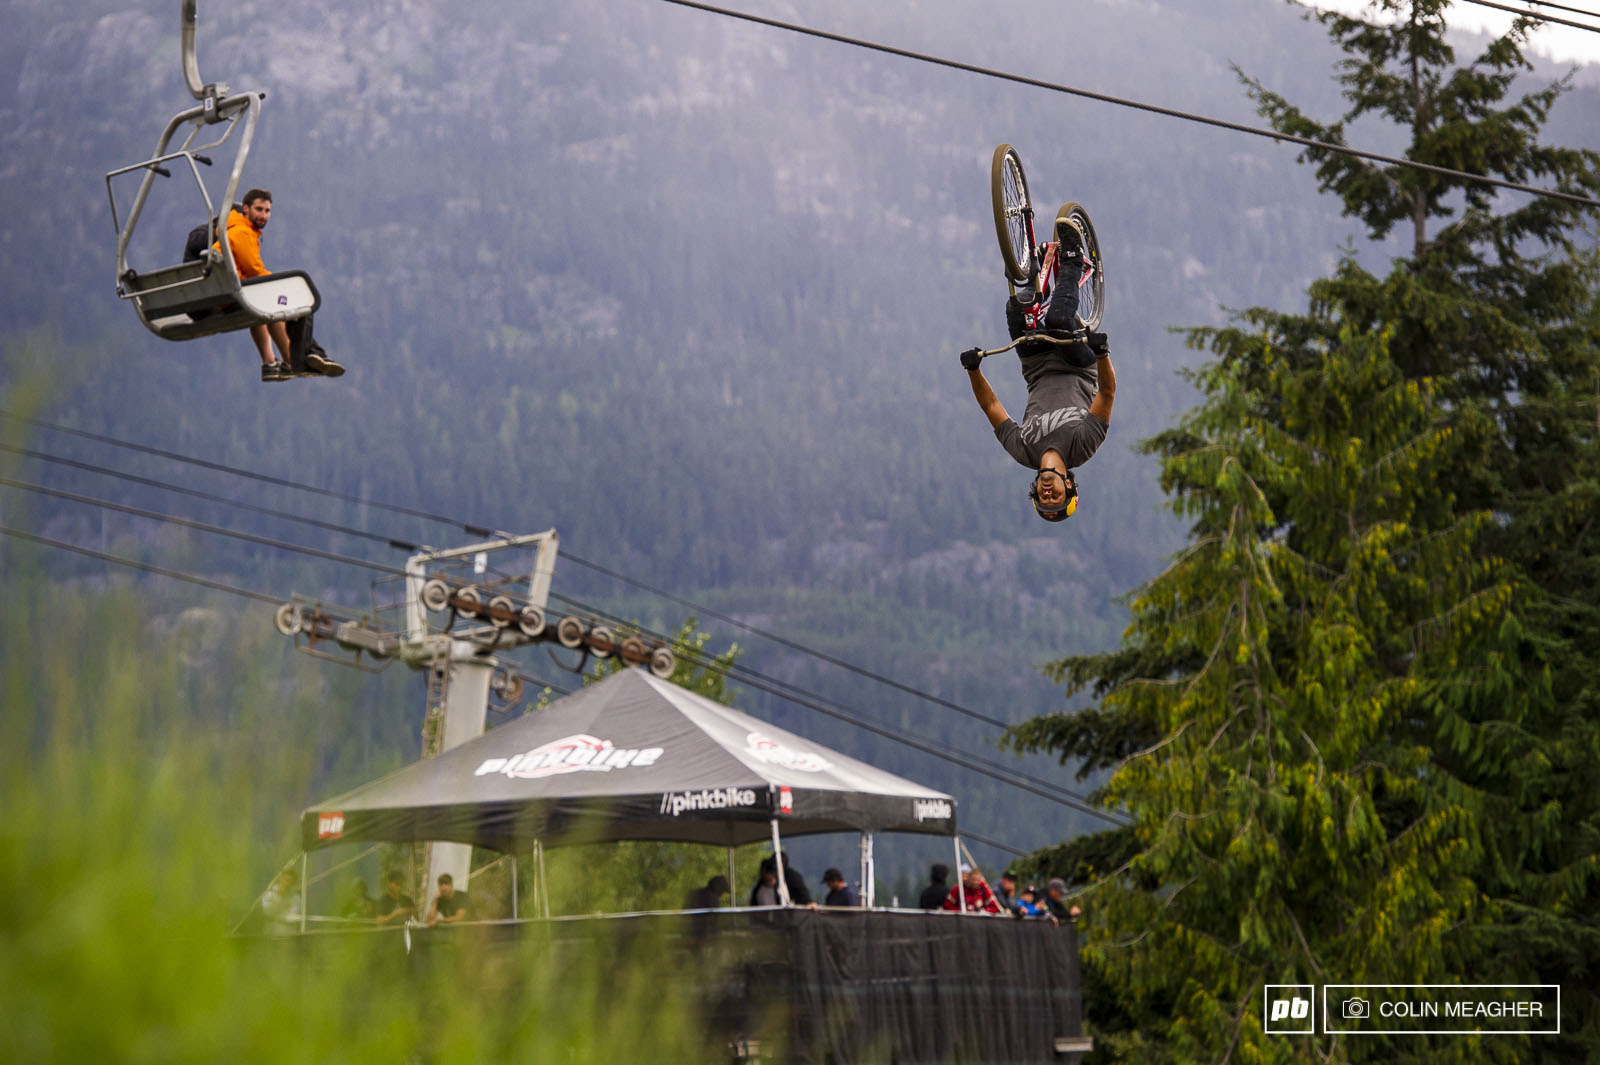 Yannick Granieri getting inverted in practice before the Joyride.